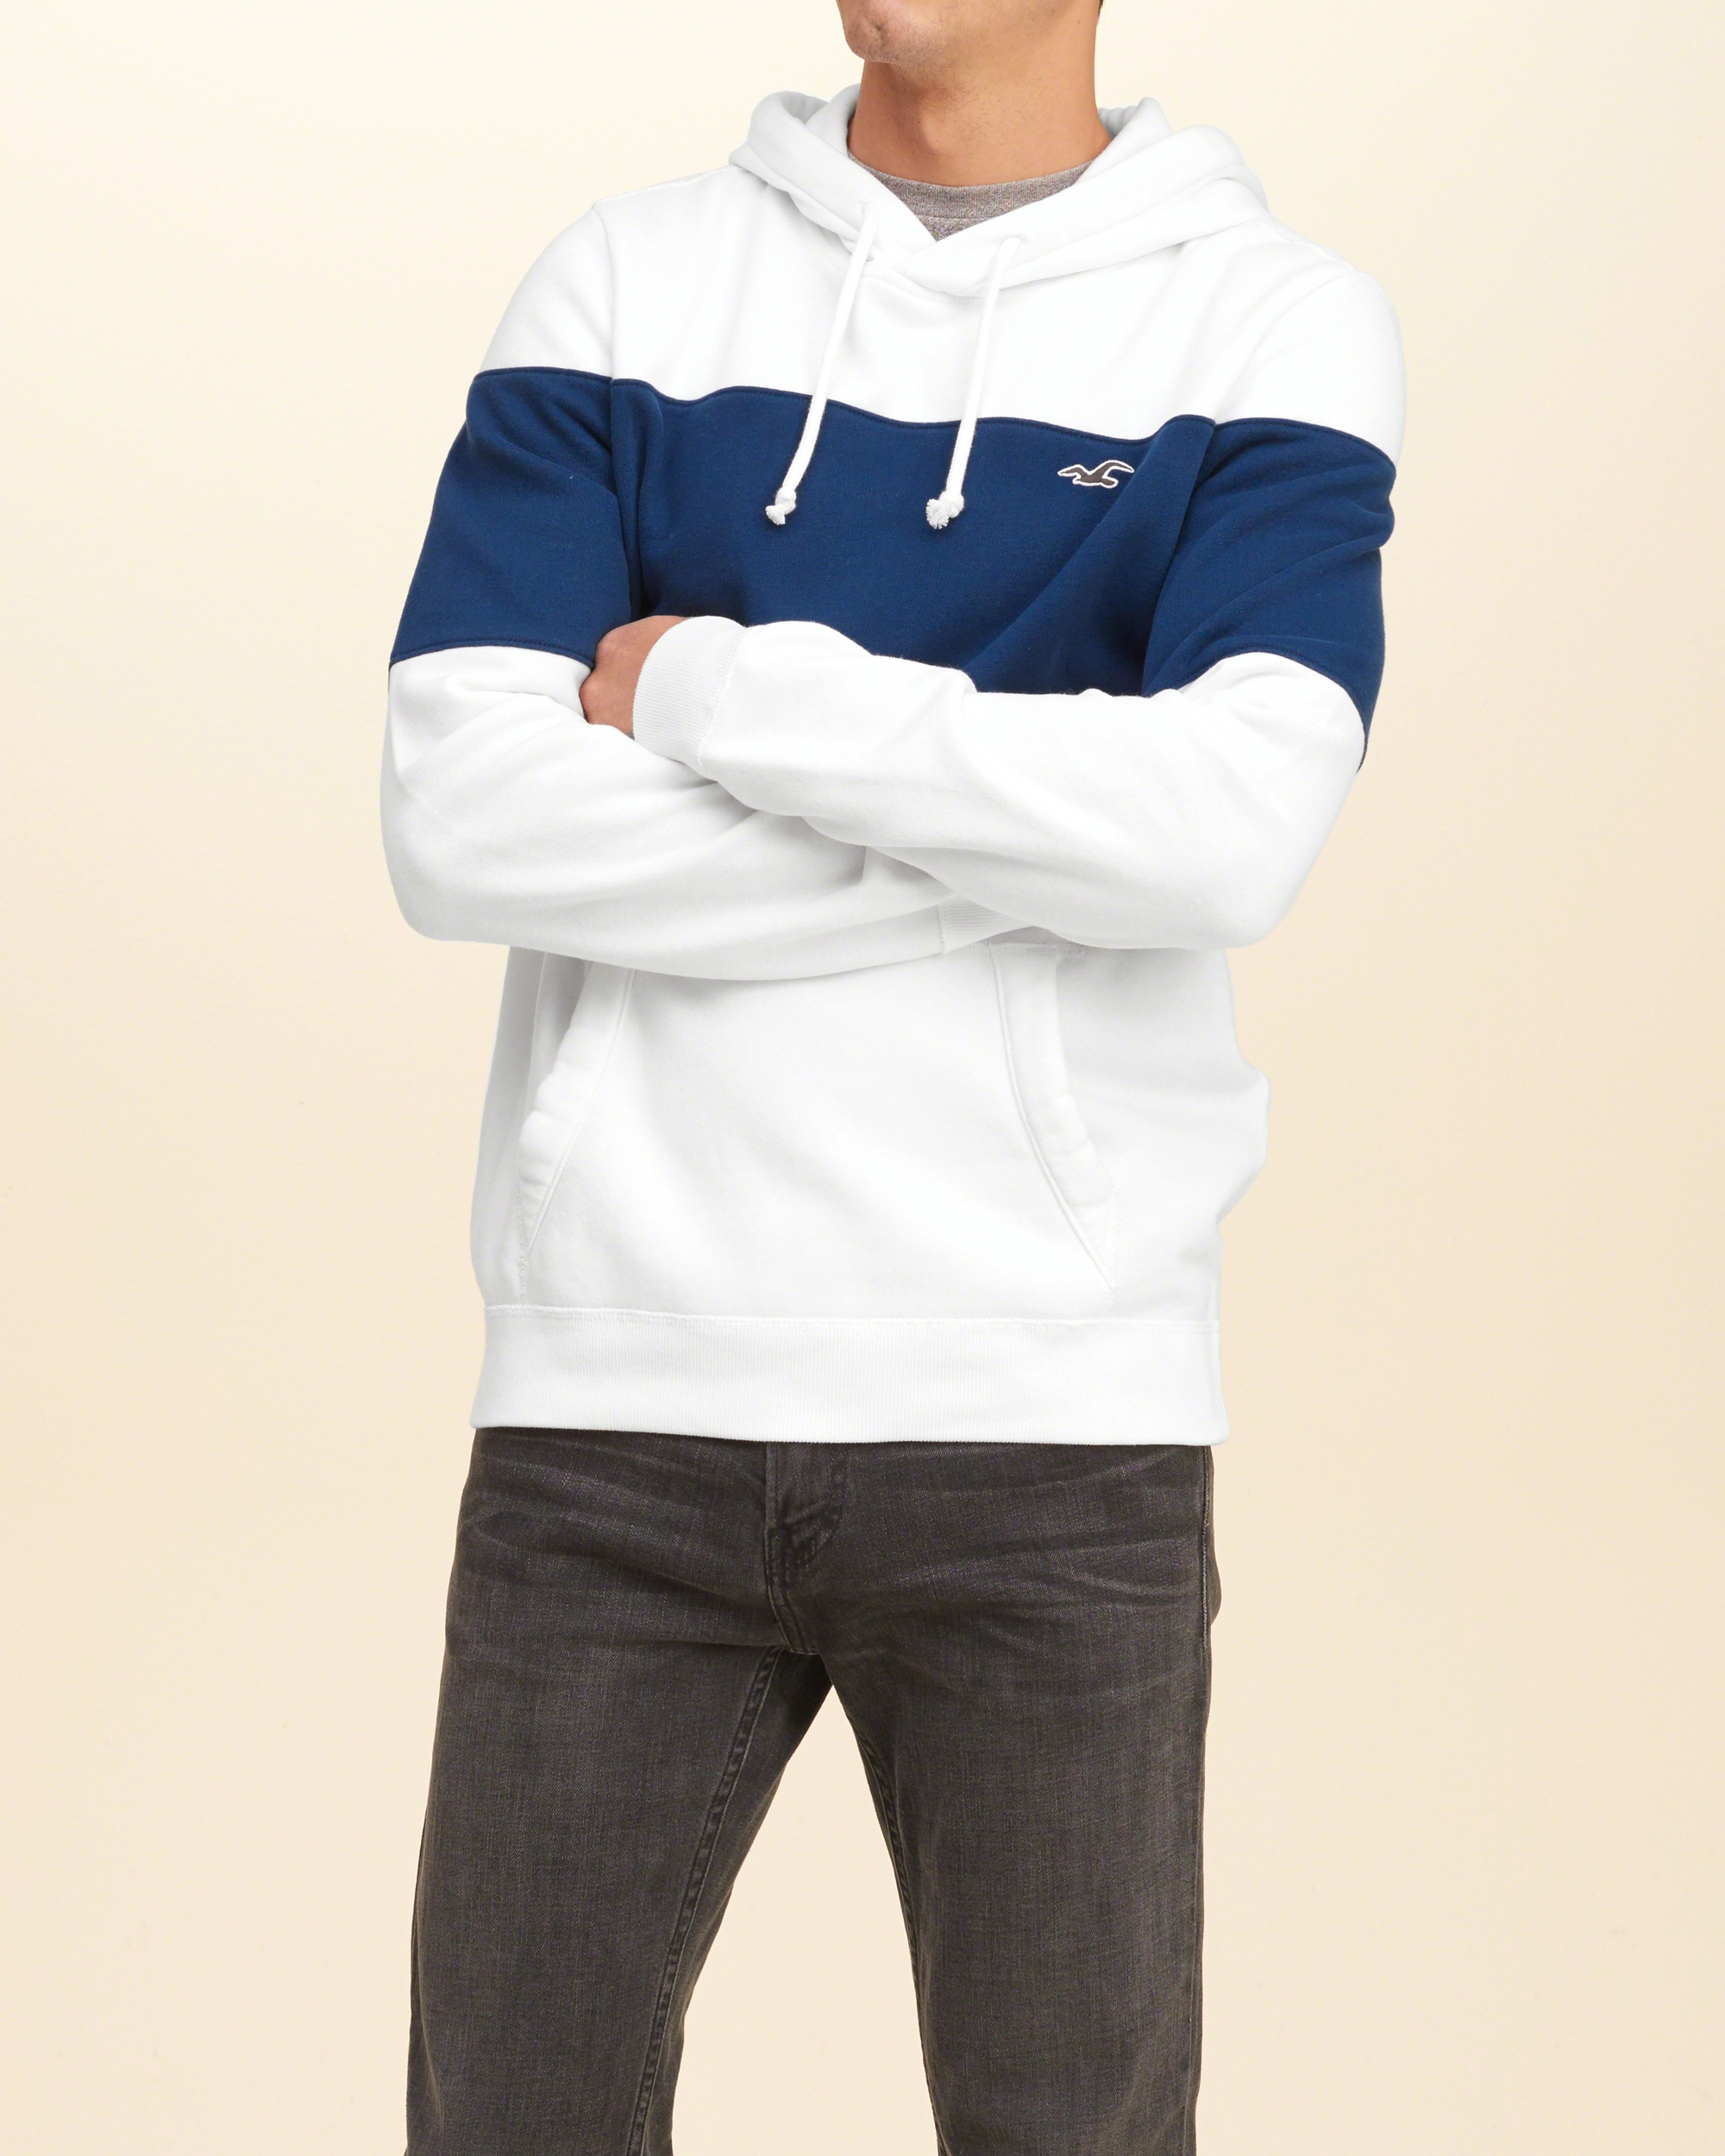 Hollister Sweaters Hollister Hoodies Hollister Shirts Hollister Jacket Hollister Pants Hollister Jeans: Hollister Iconic Colorblock Hoodie In Blue For Men